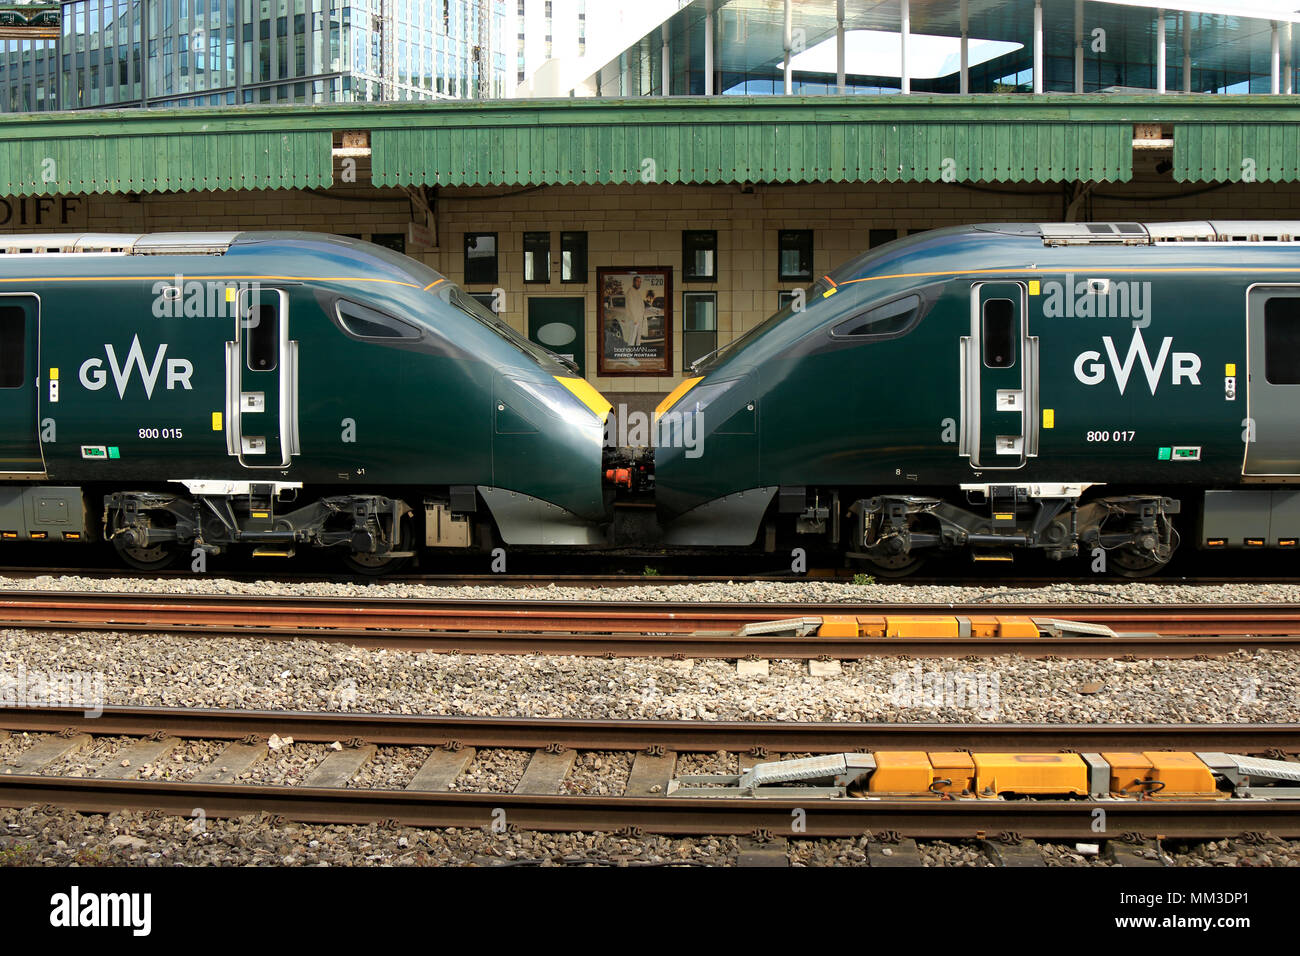 Class 800 Train Stock Photos  U0026 Class 800 Train Stock